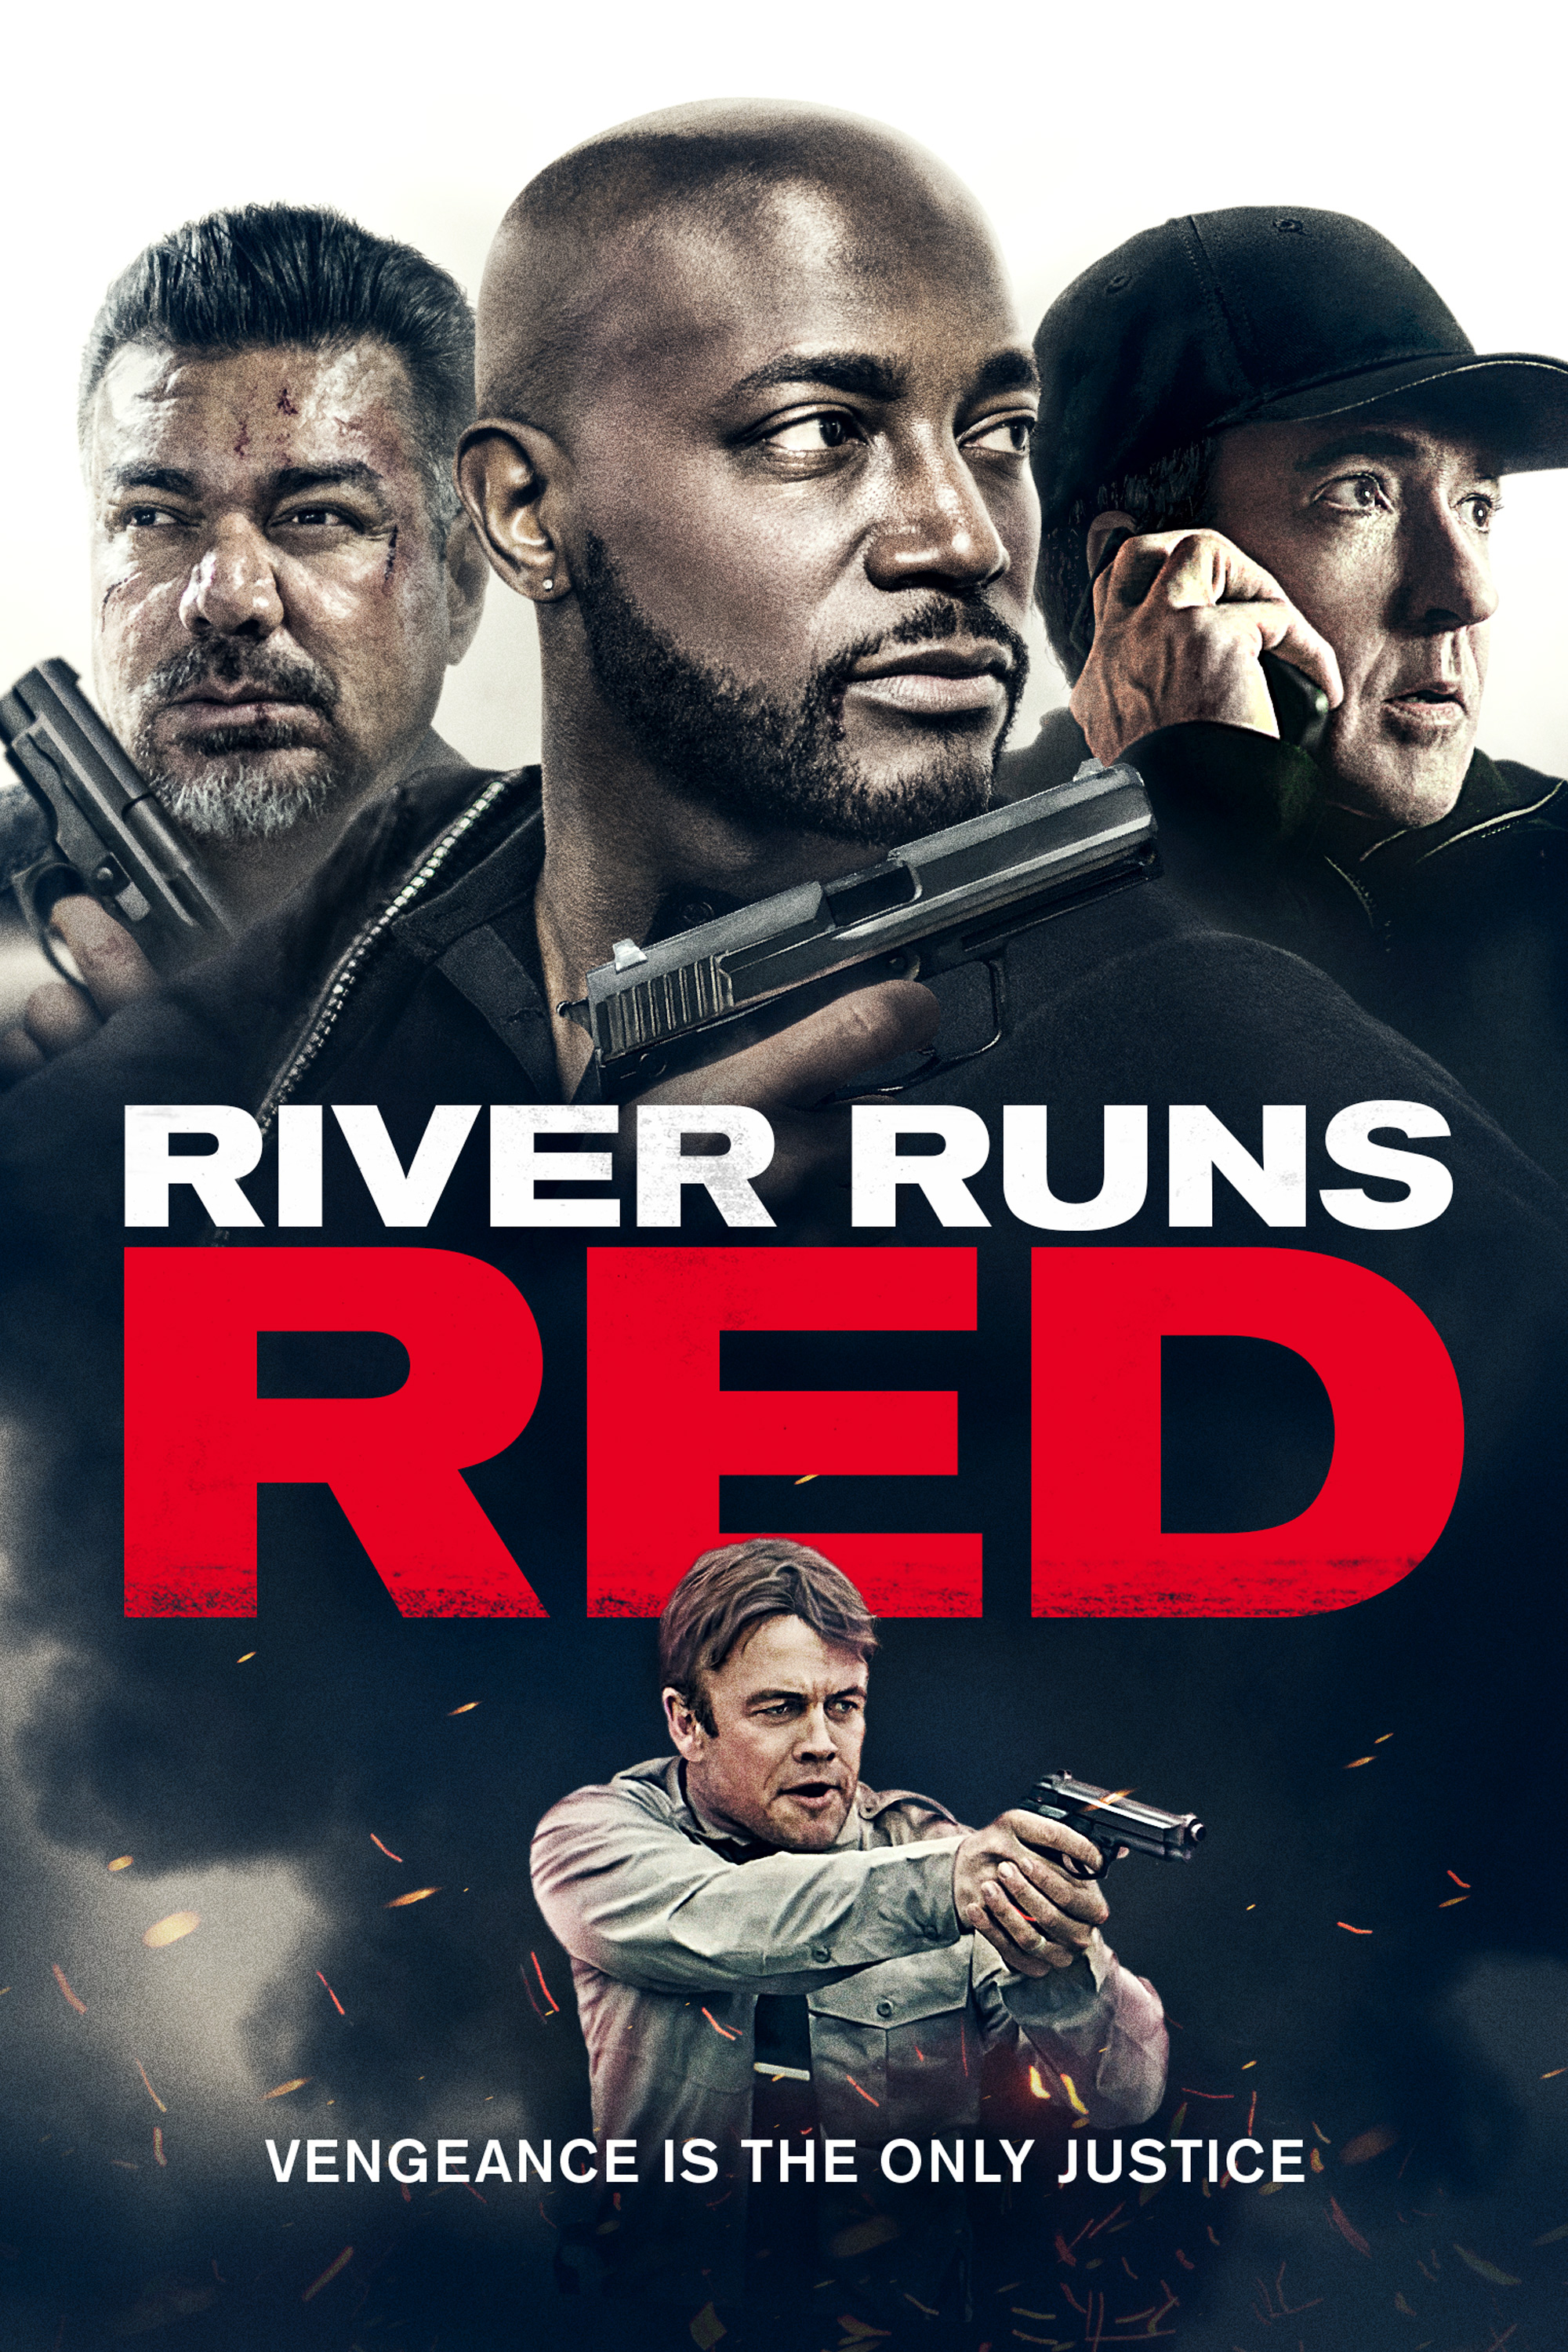 45445_3_RIVER_RUNS_RED_ITUNES_FILM_2000x3000